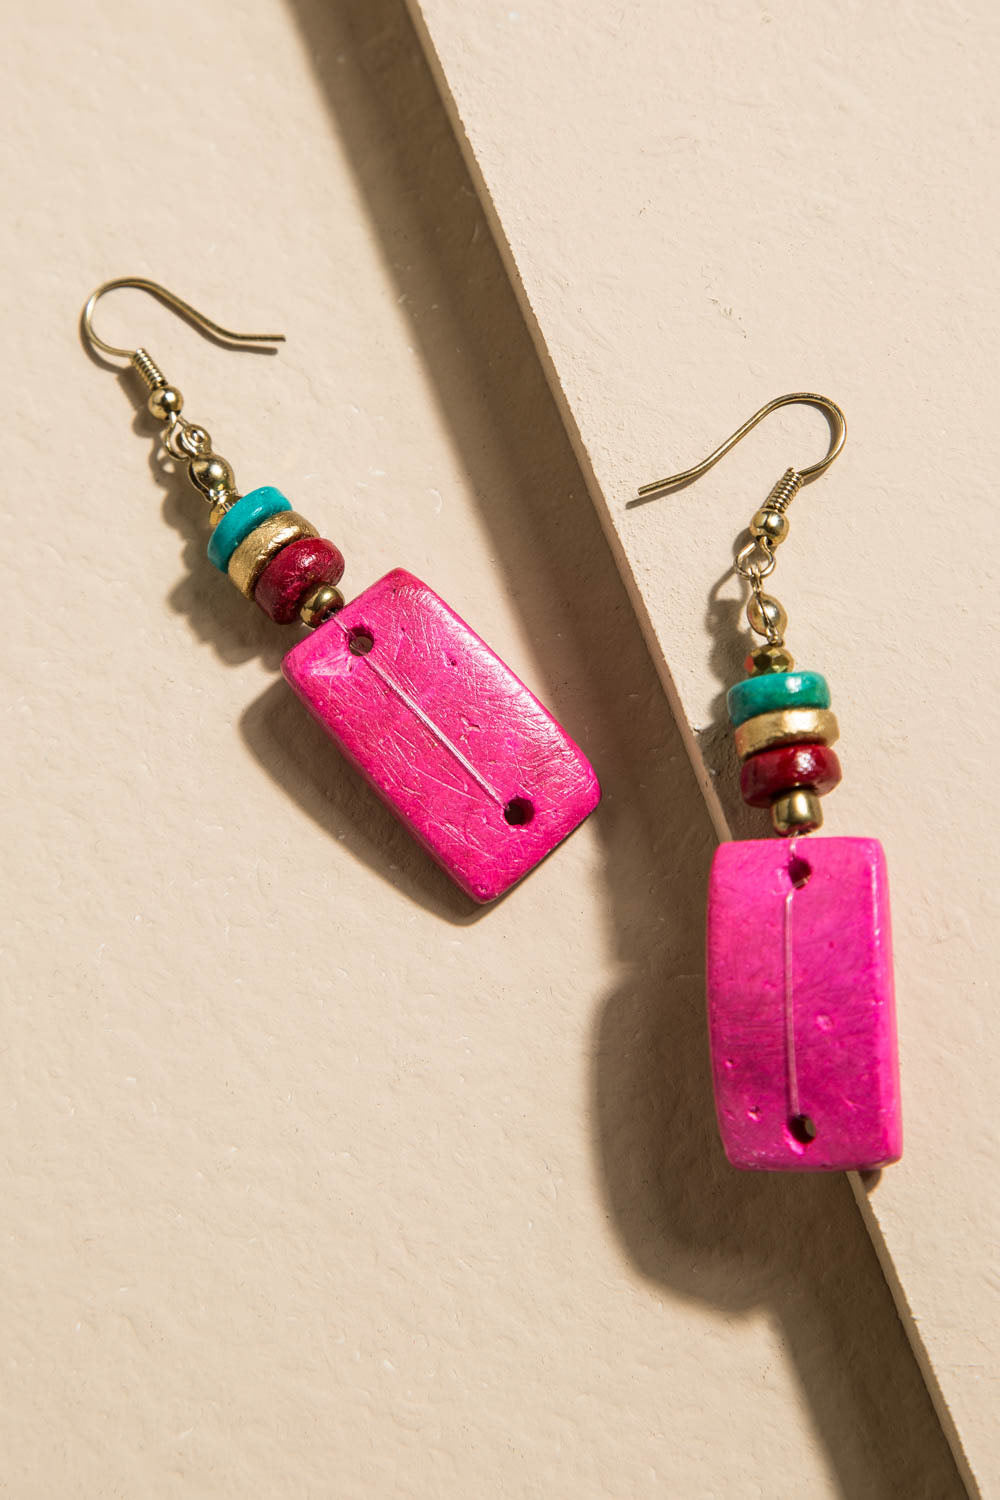 Type 3 Cha Cha Cha Earrings